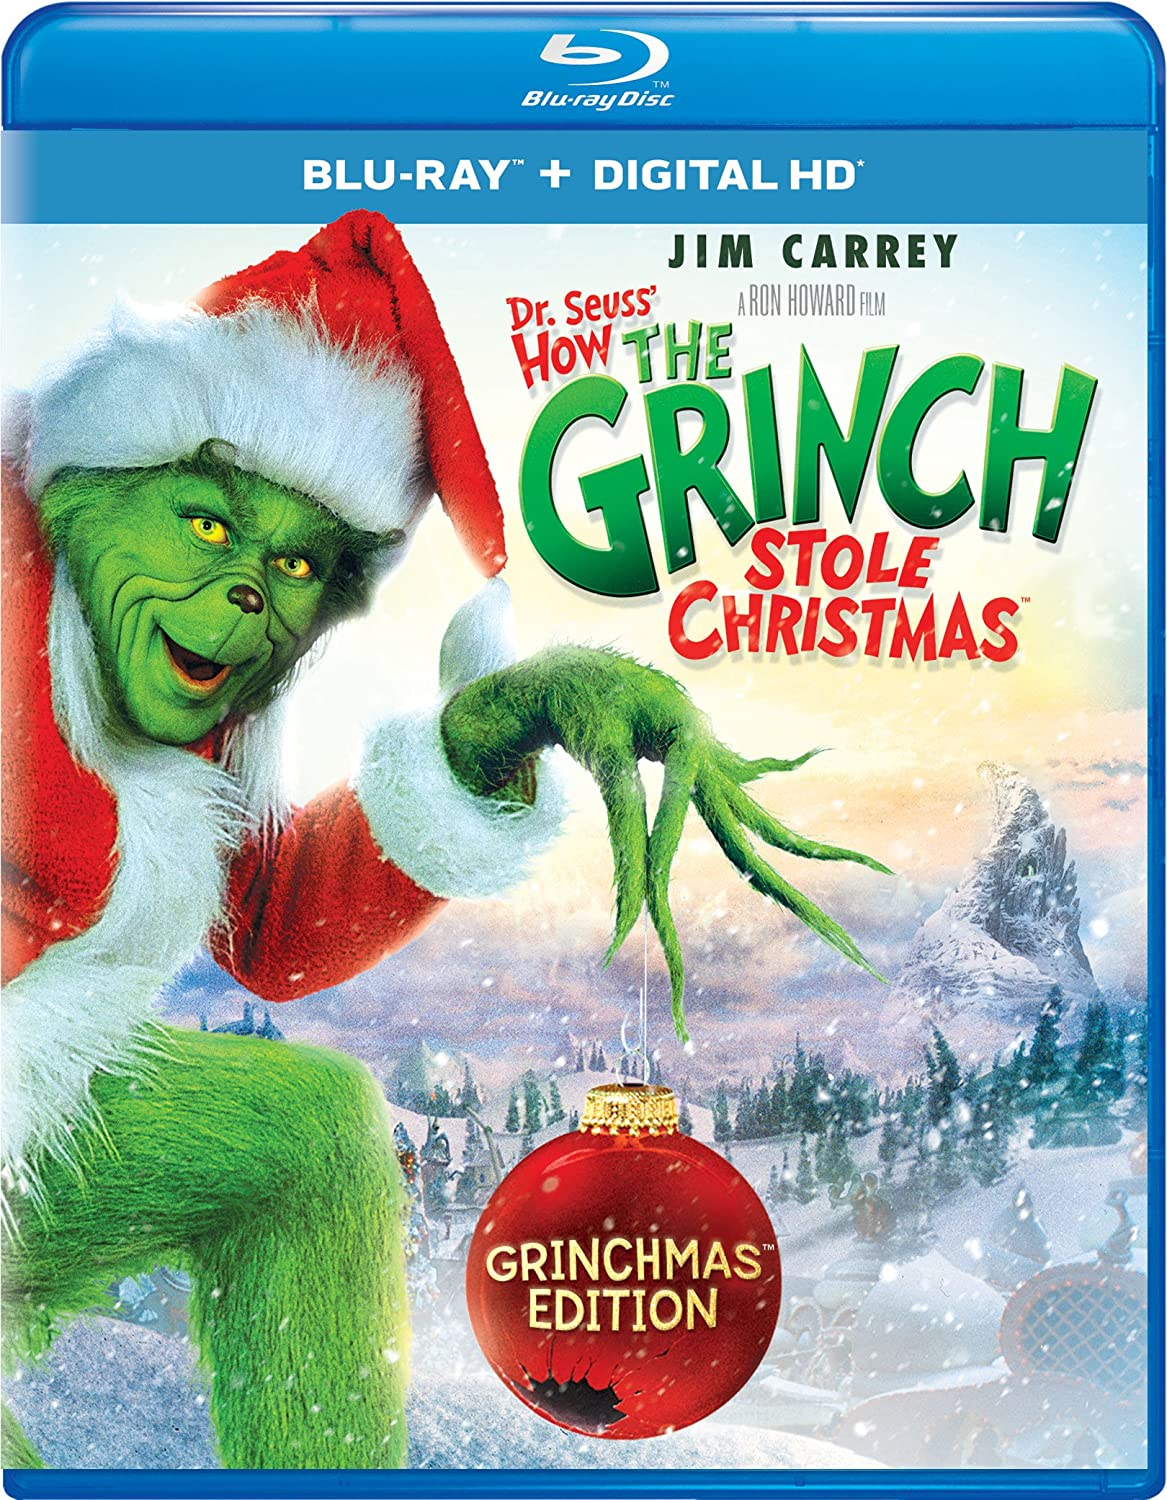 Amazon.com: Dr. Seuss' How The Grinch Stole Christmas [Blu-ray ...